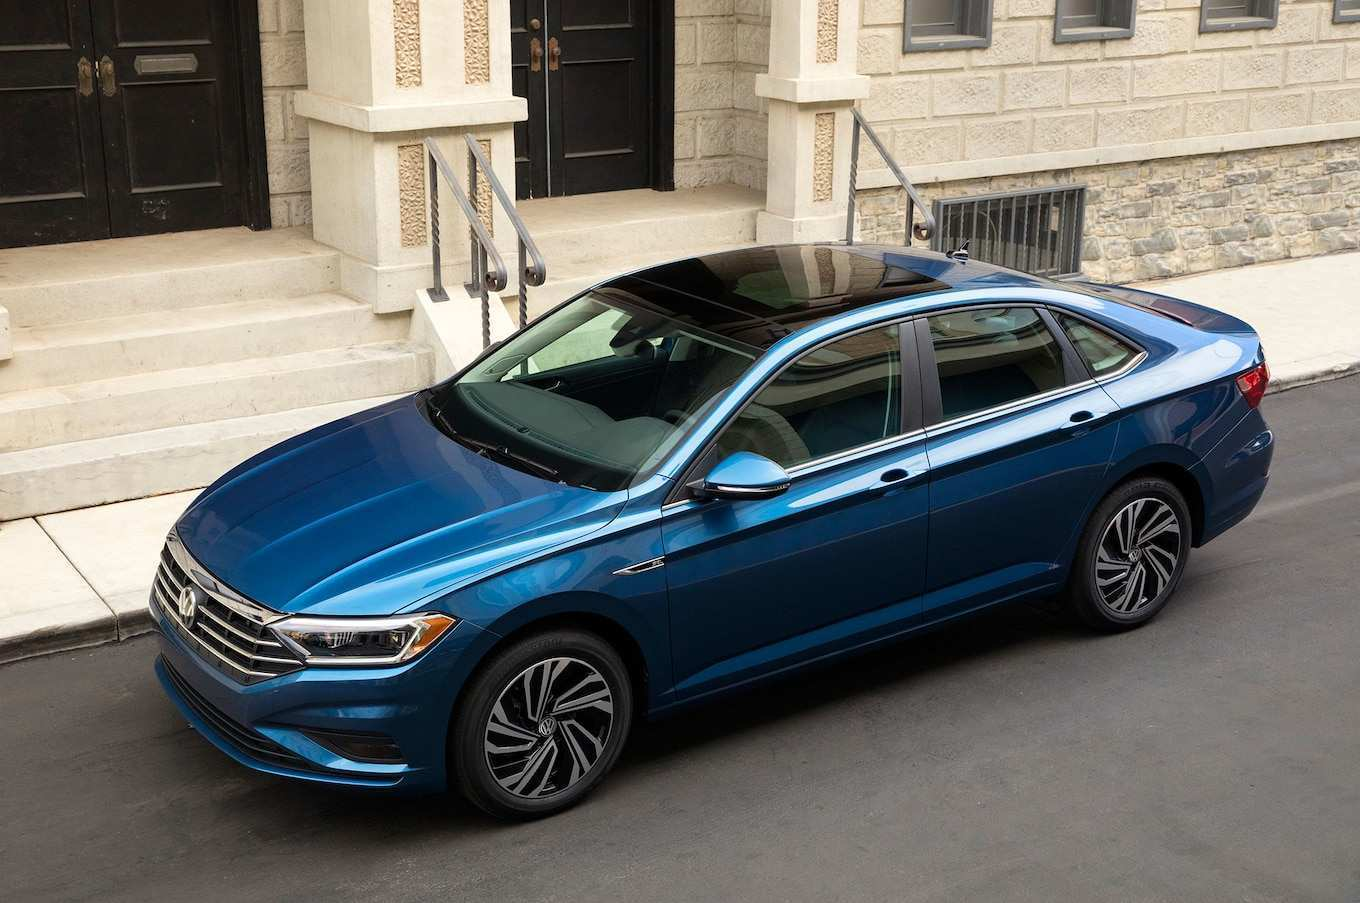 61 Gallery of 2020 Volkswagen Jetta Exterior In India History for 2020 Volkswagen Jetta Exterior In India